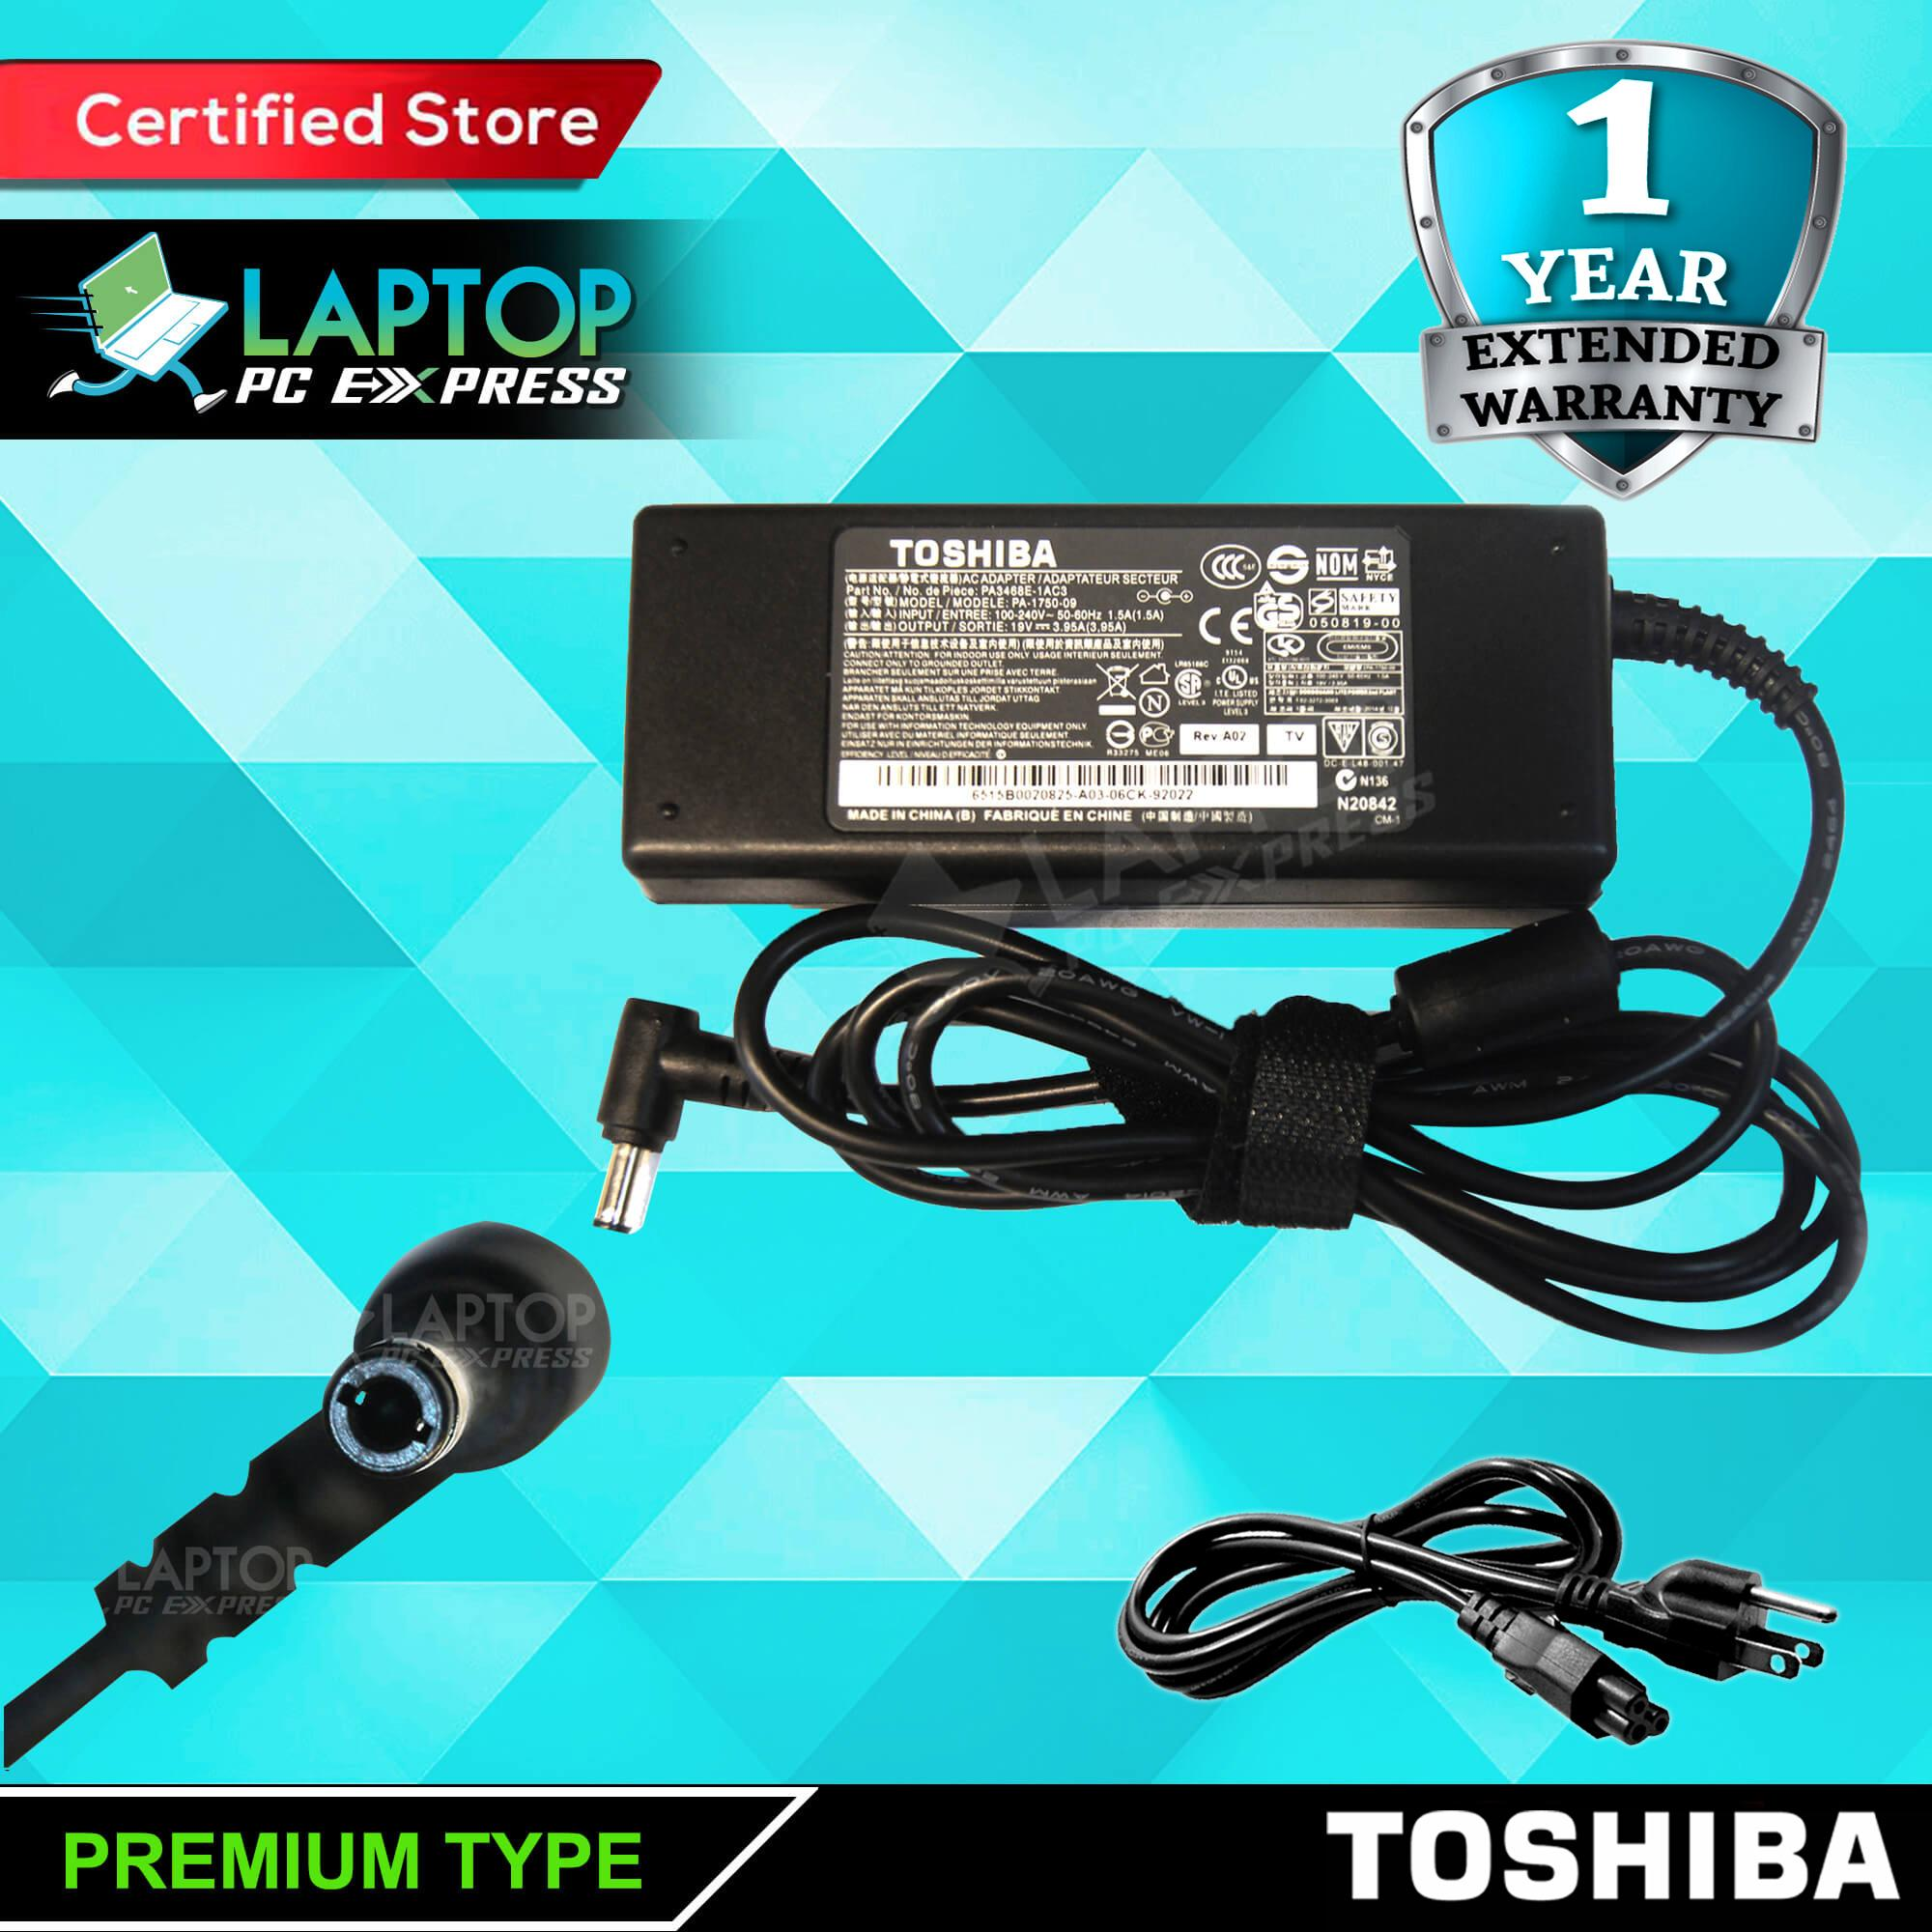 38f7db0f6ce7 Toshiba Laptop Charger 19V 3.95A 5.5mm x 2.5mm PA3714U-1ACA Satellite A200  A300 A350 A660 C670 L100 L300 L350 L450 L500 L505 L550 L555 L630 L650 L670  ...